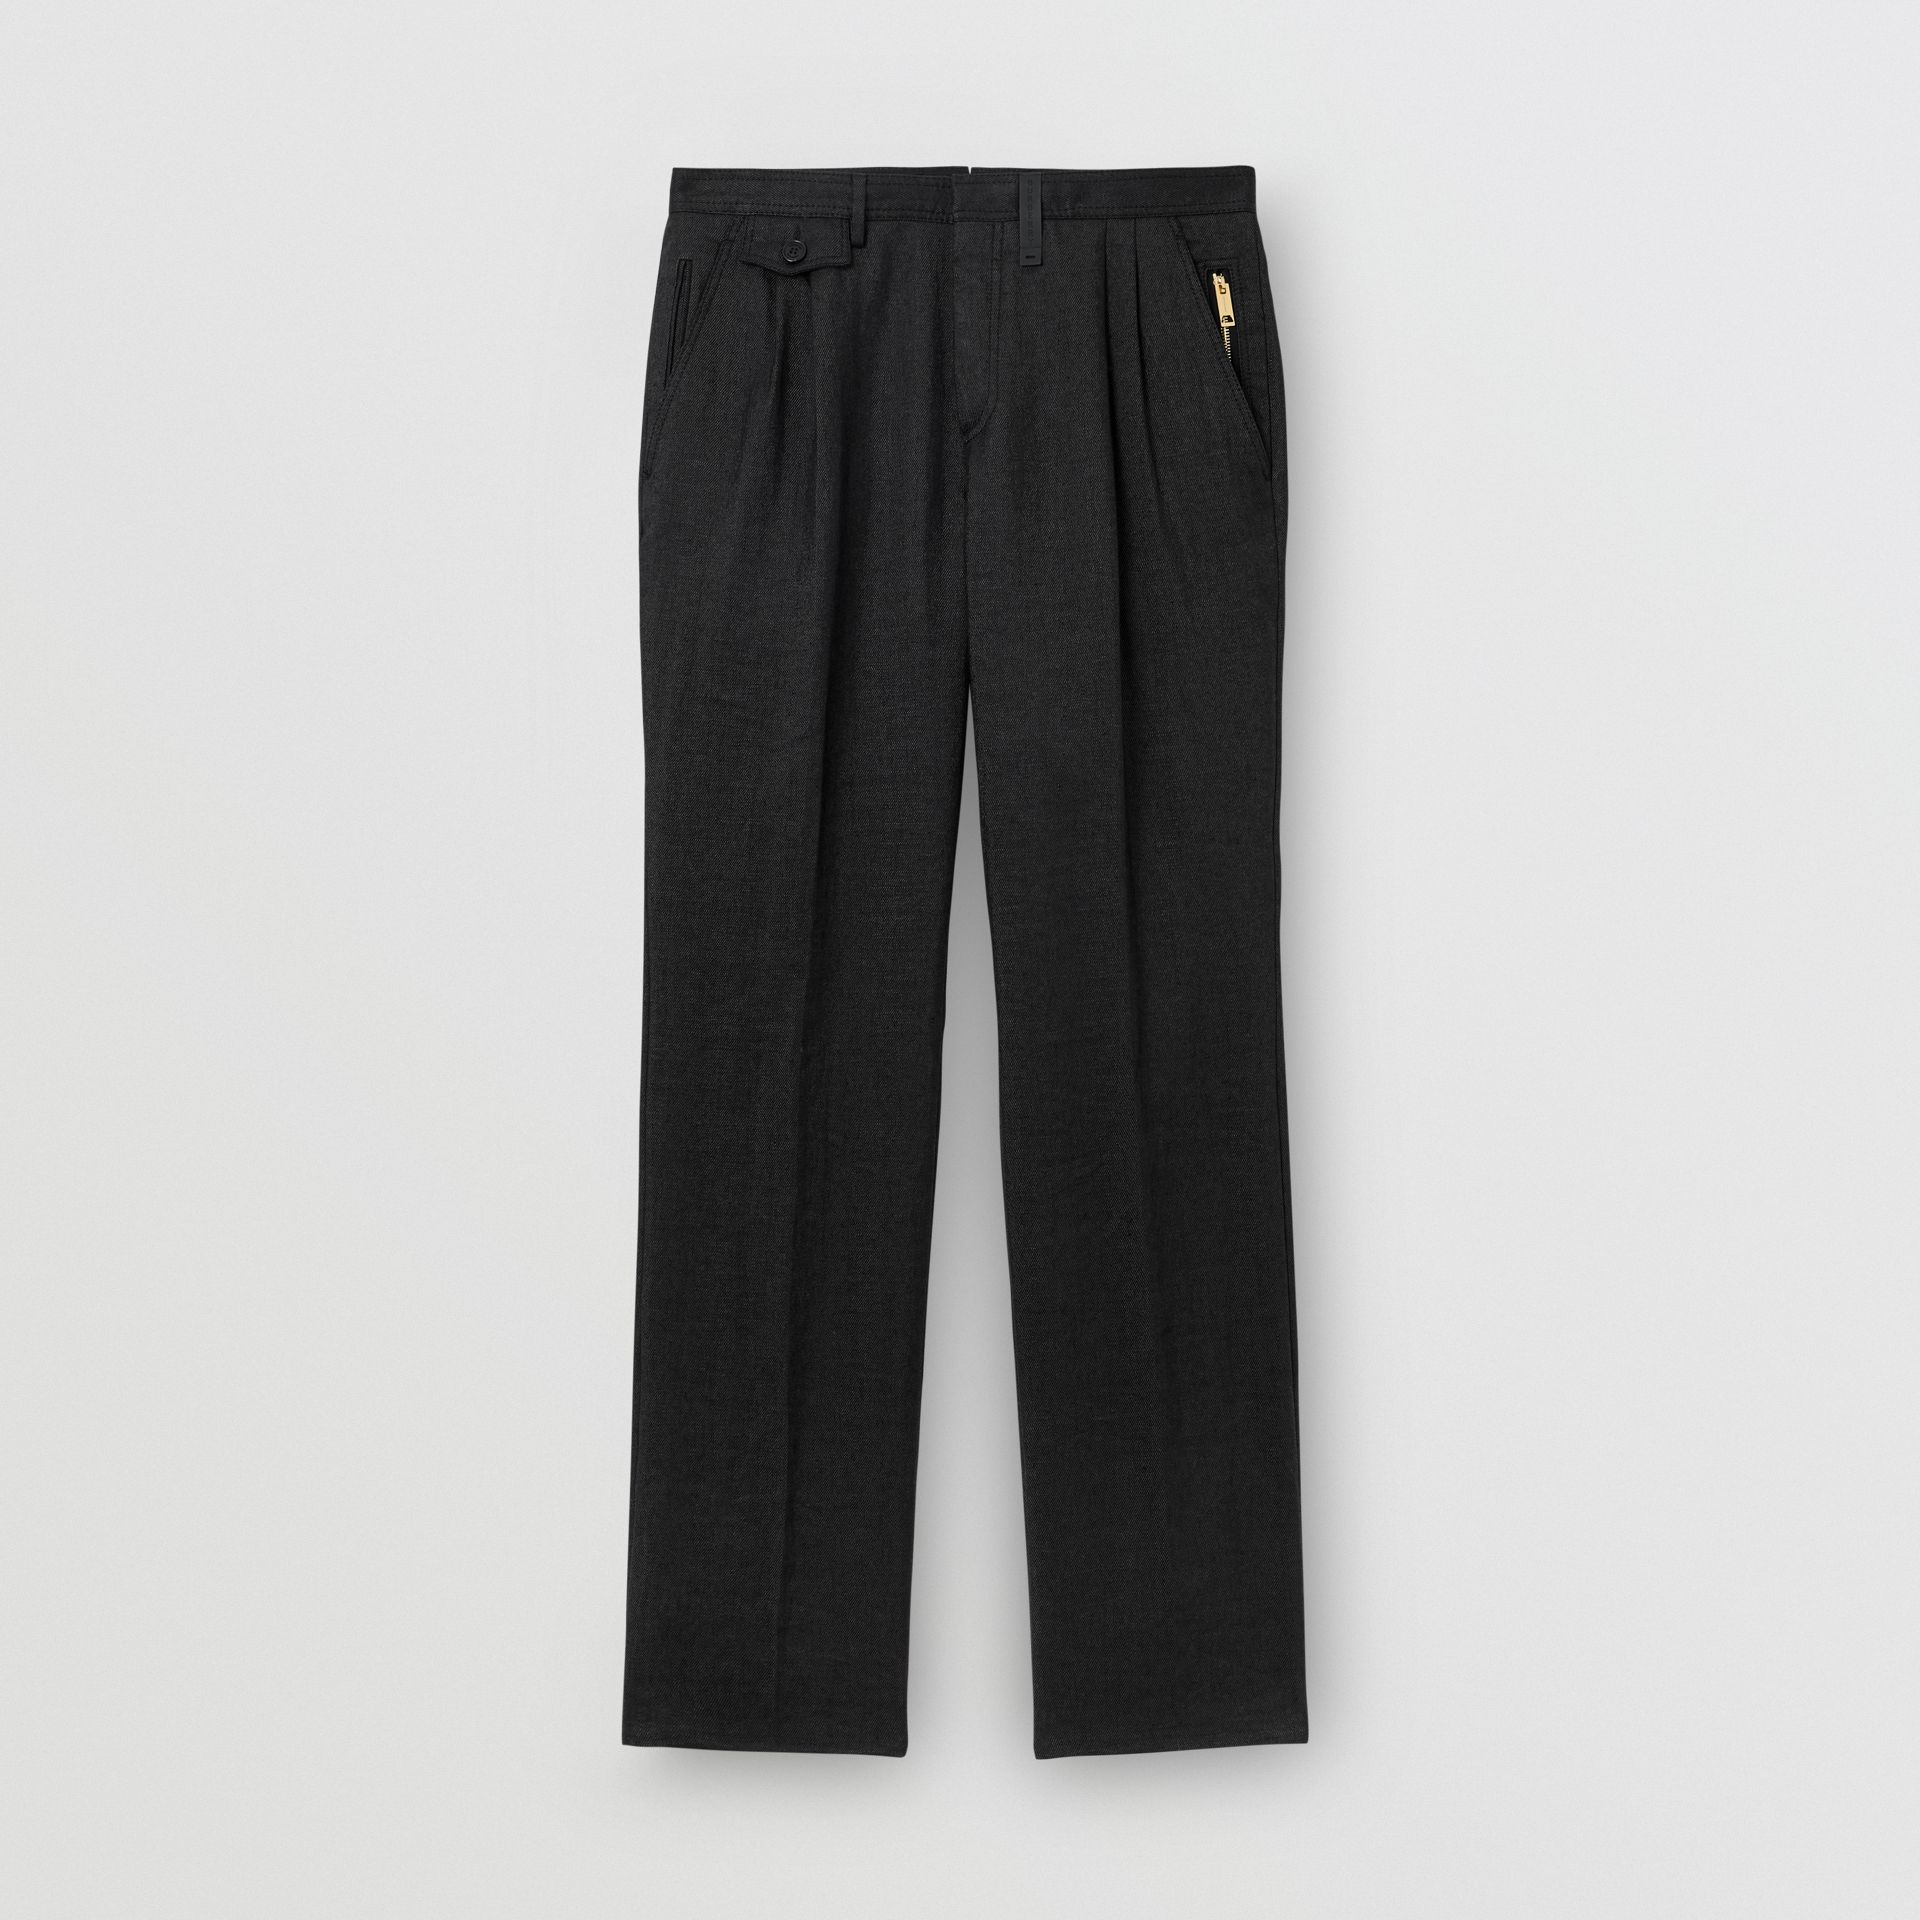 Zip Detail Linen Blend Pleated Trousers in Black - Men | Burberry United Kingdom - gallery image 3